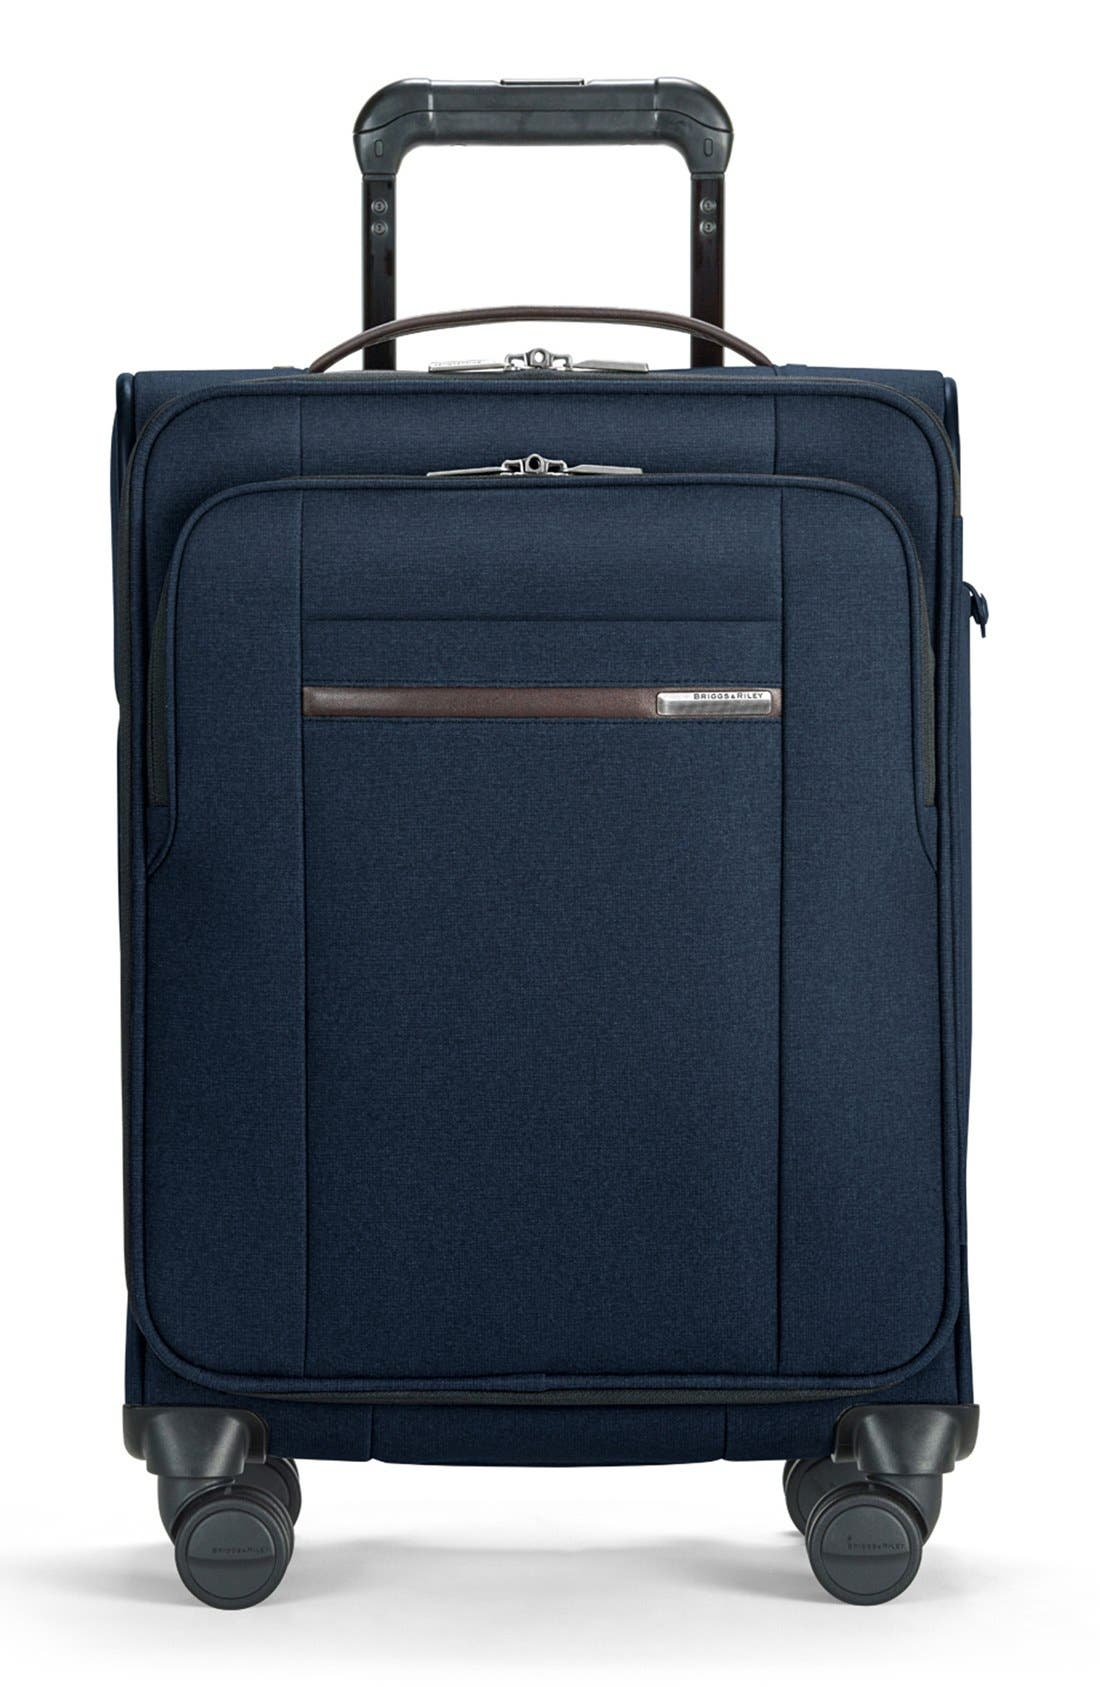 Briggs & Riley 'Kinzie Street' International Wheeled Carry-On (21 Inch)